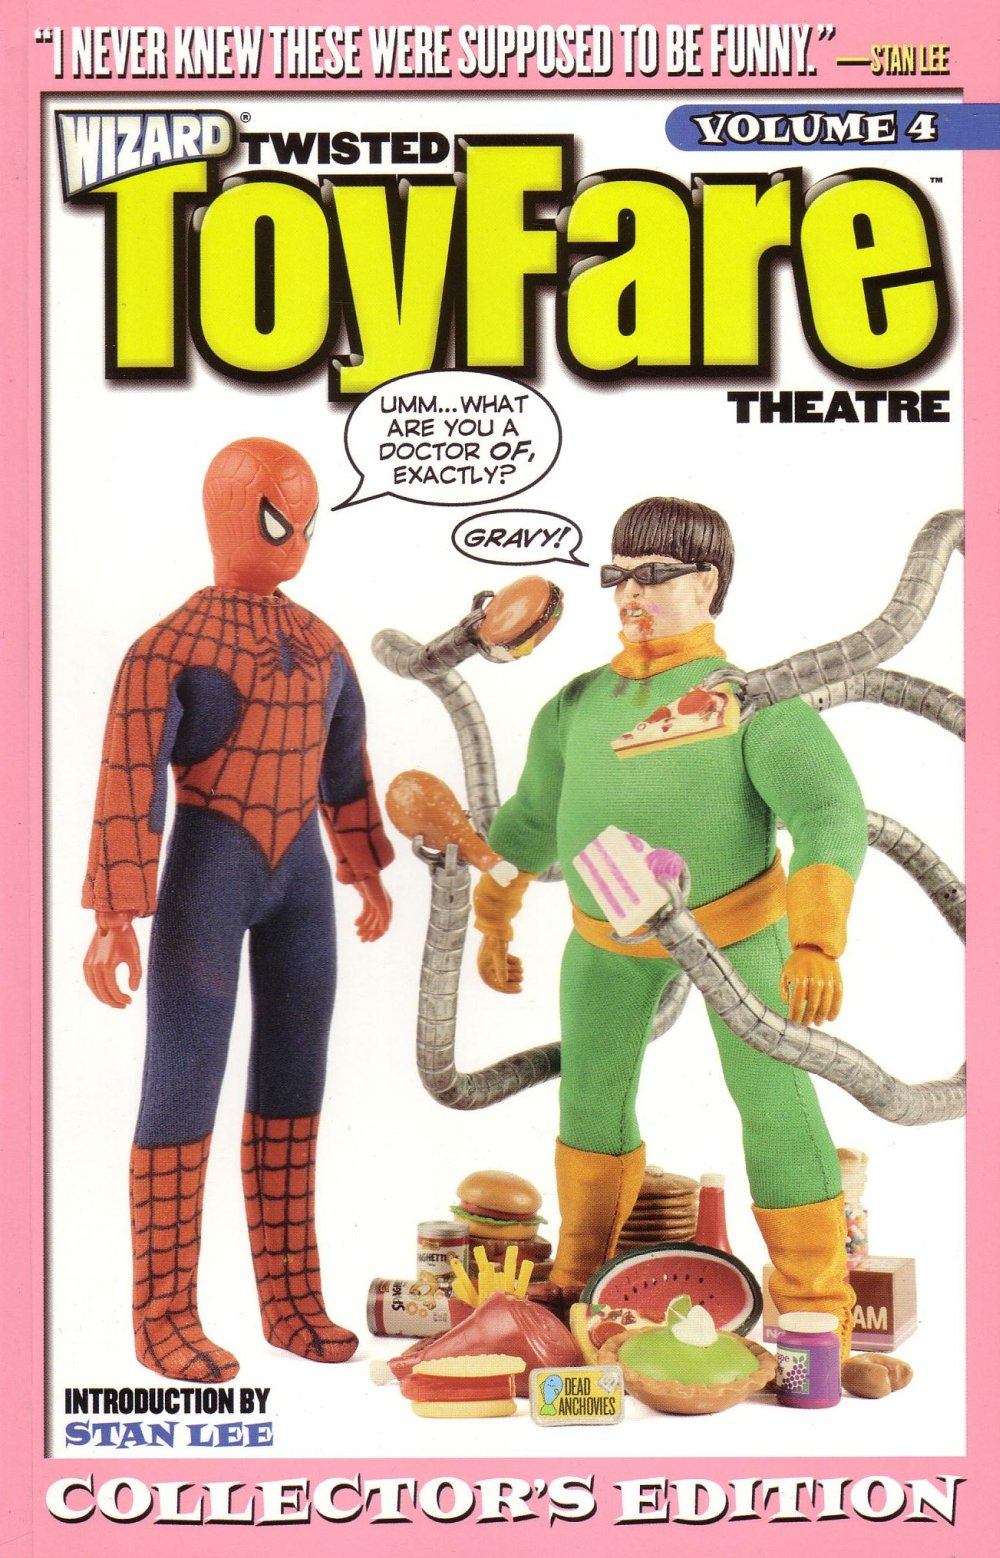 Wizard Twisted Toyfare Theatre [Wizard] V1 0004.jpg